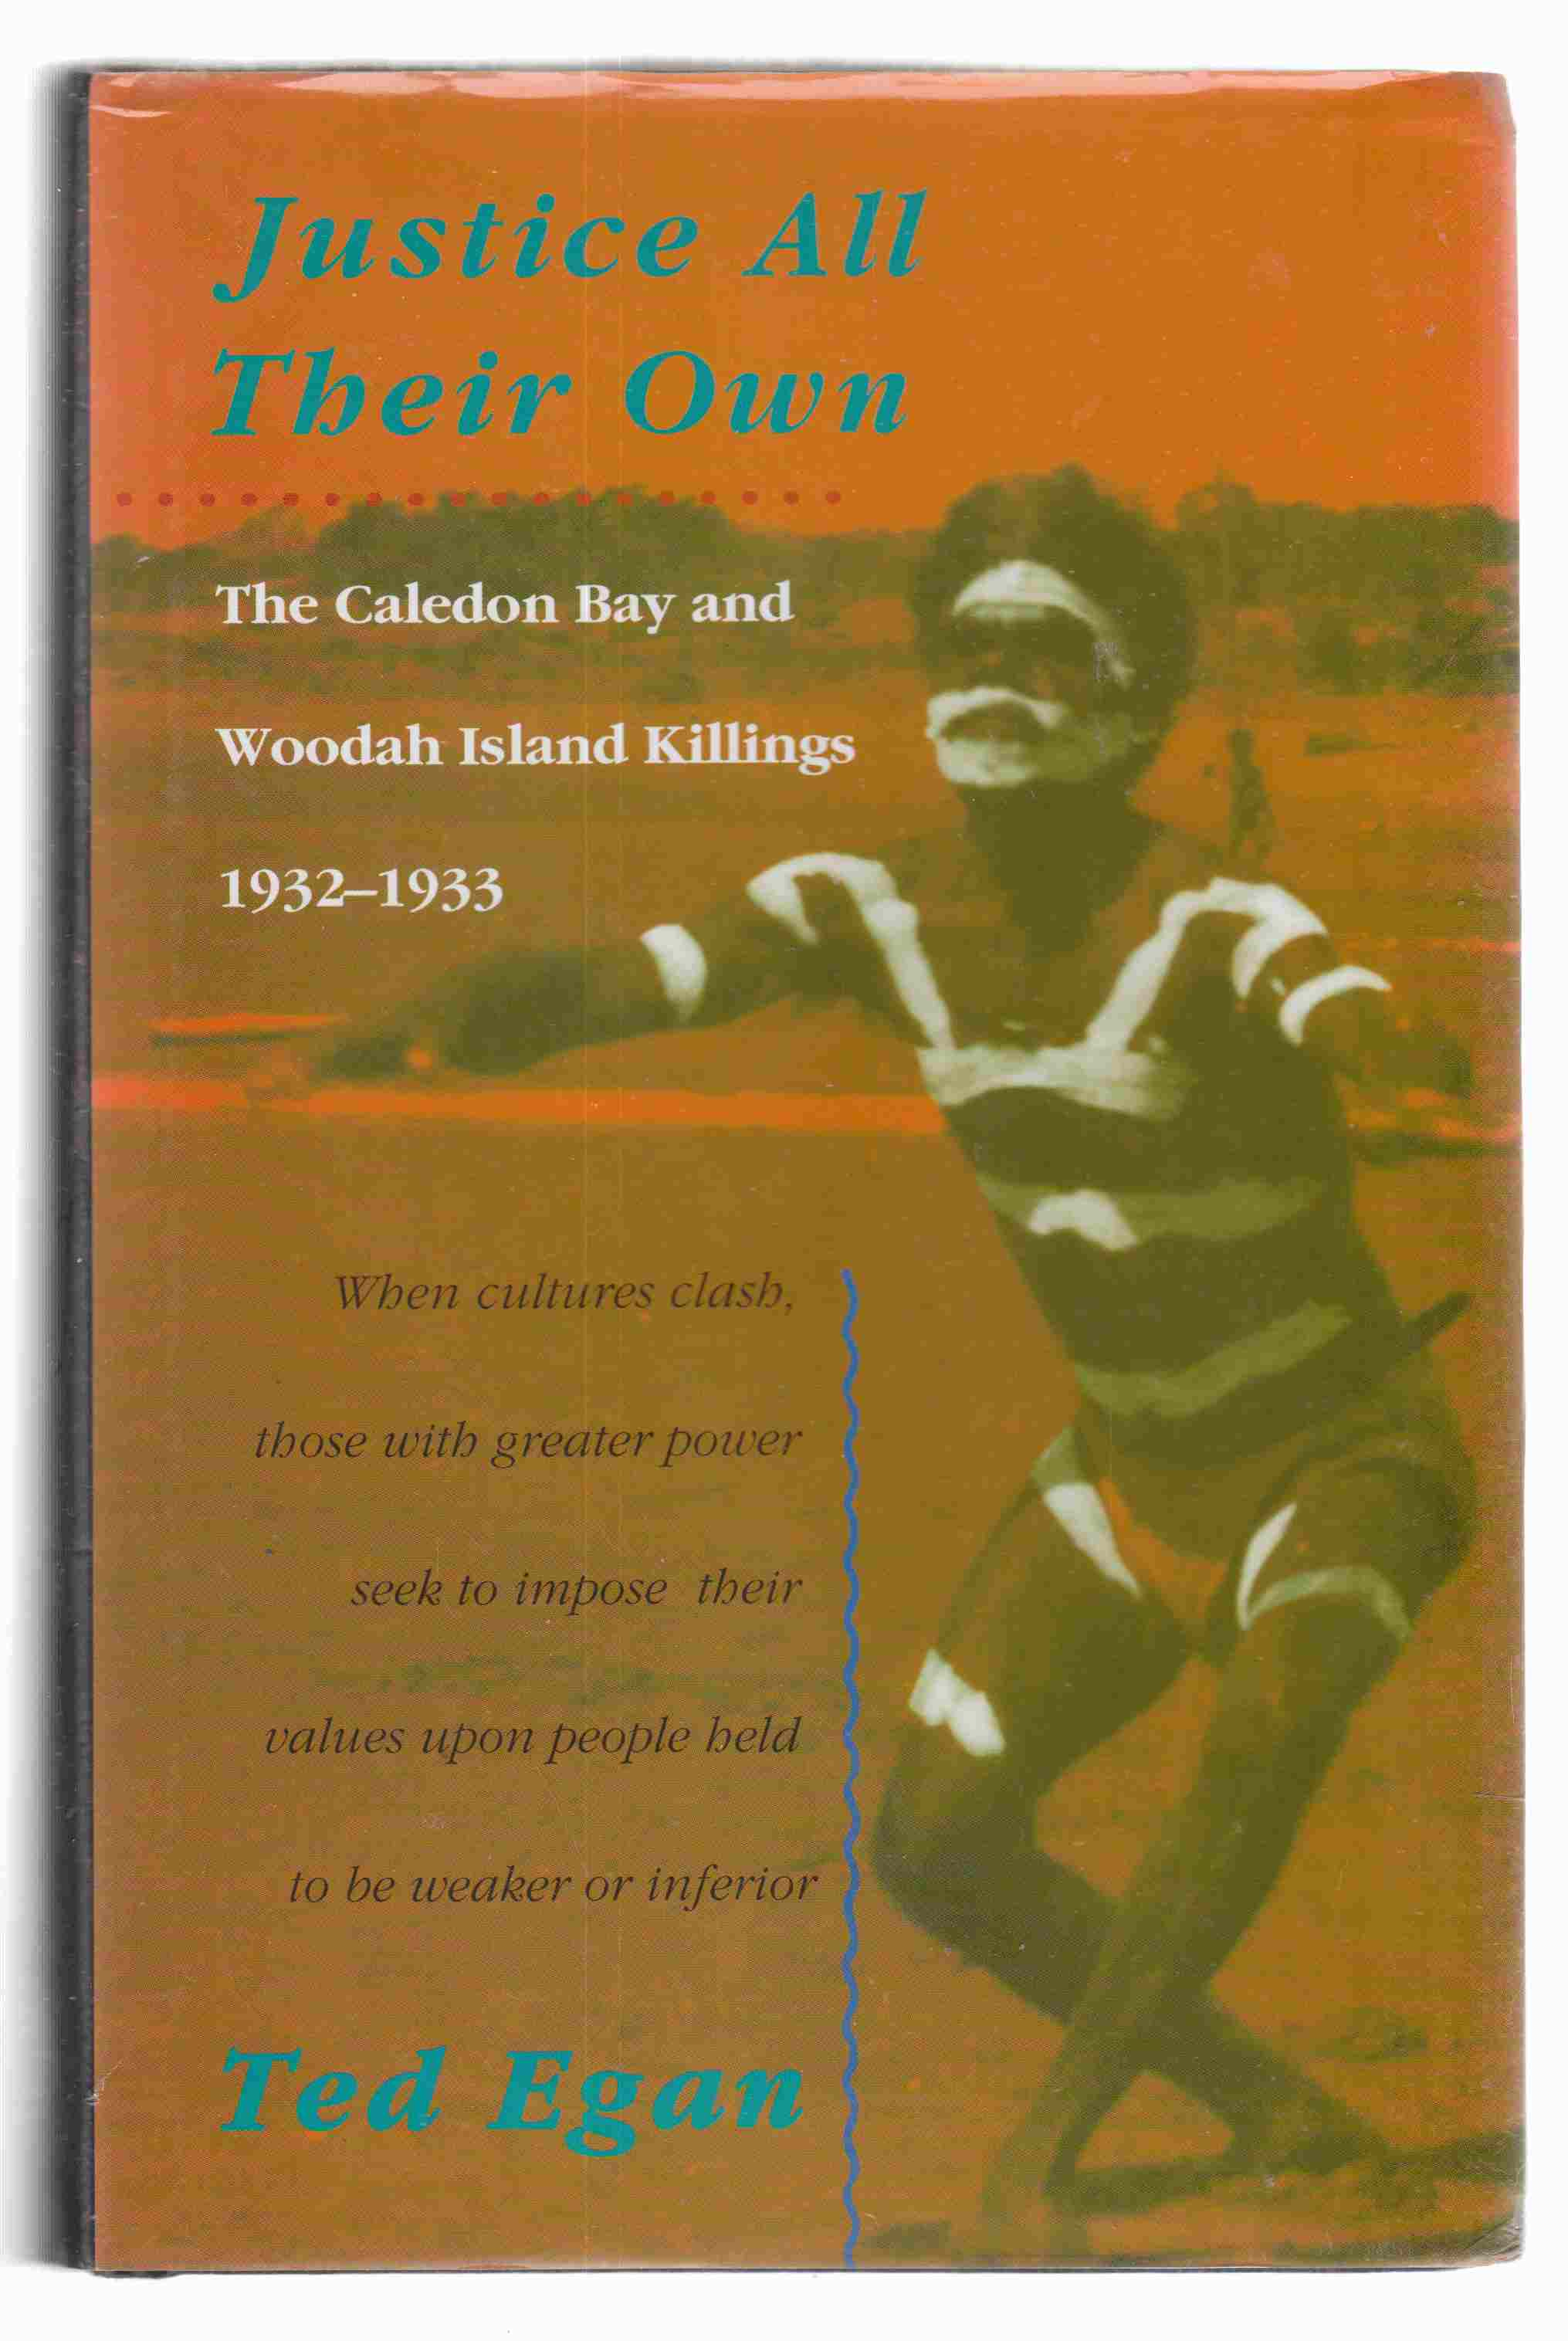 Image for Justice all Their Own The Caledon Bay and Woodah Island Killings 1932-1933